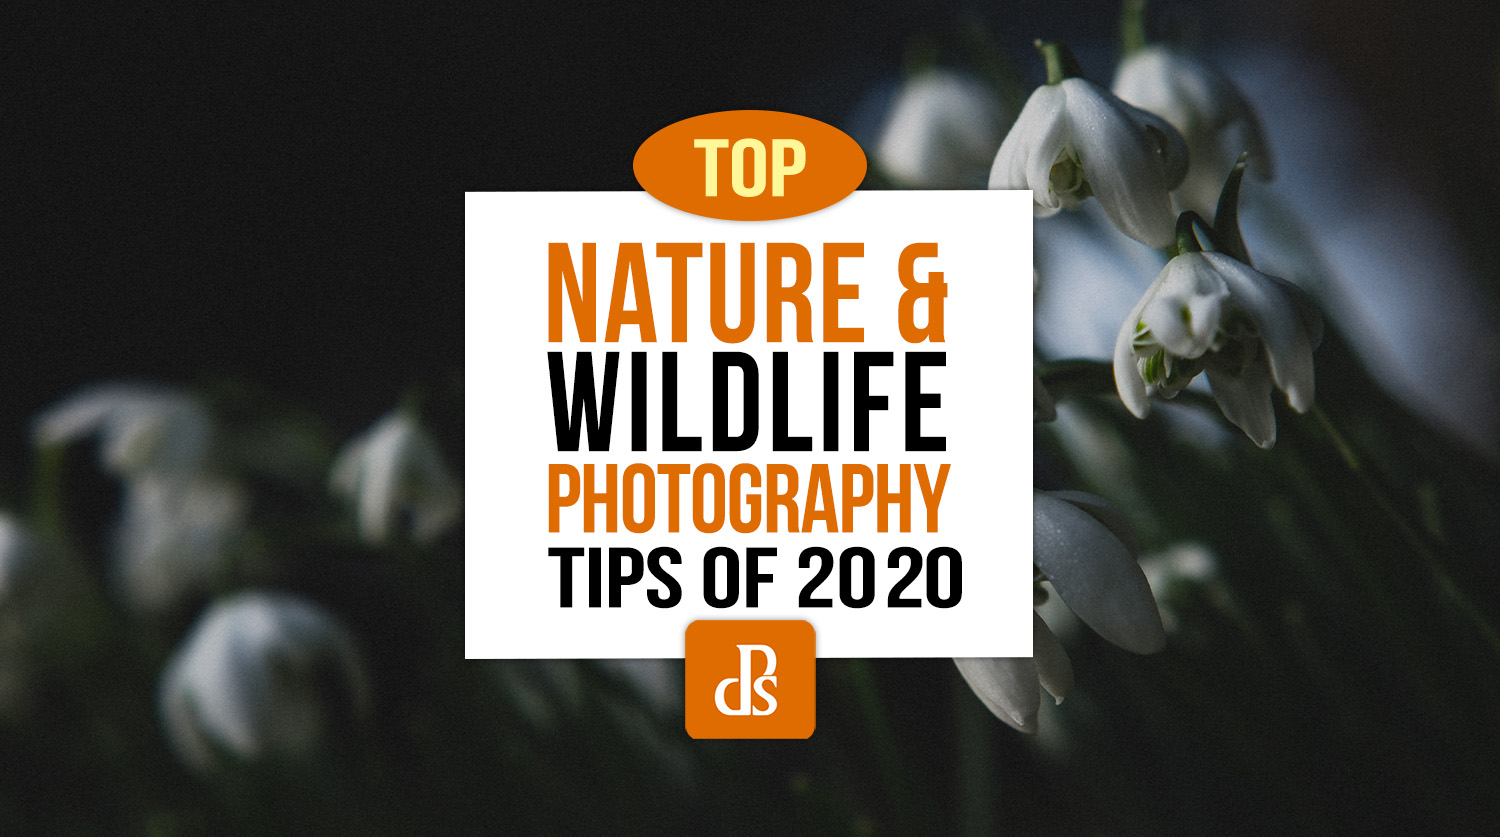 https://i0.wp.com/digital-photography-school.com/wp-content/uploads/2020/12/dps-top-nature-and-wildlife-photography-tips-2020.jpg?resize=1500%2C837&ssl=1